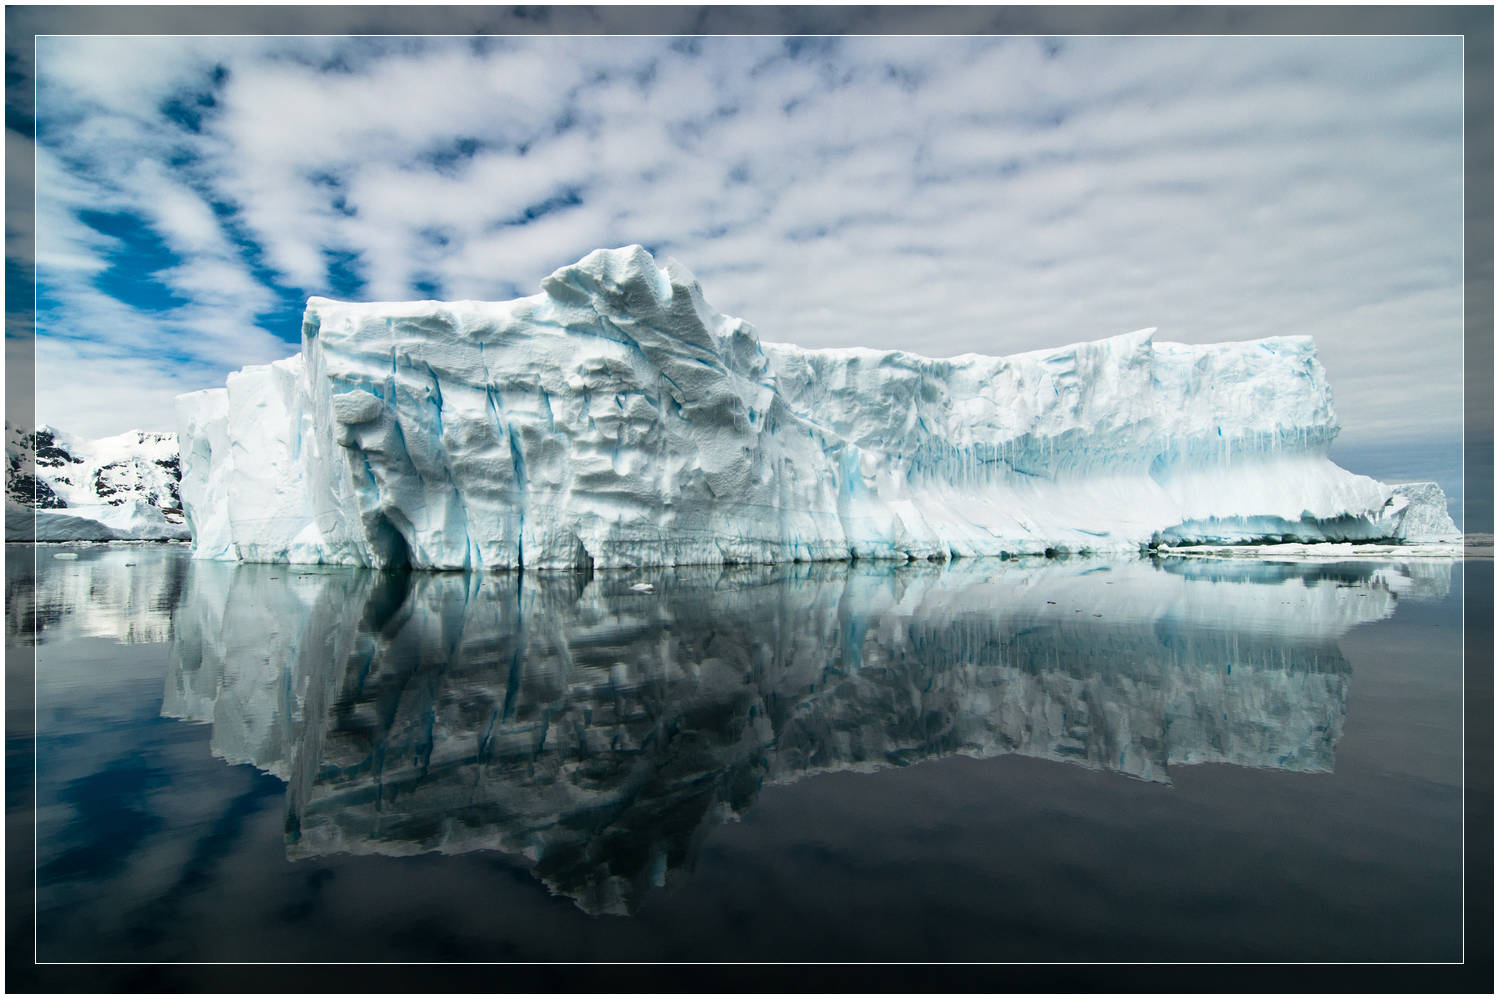 Antarctic Ice Reflections (c) Dustin Main 2010